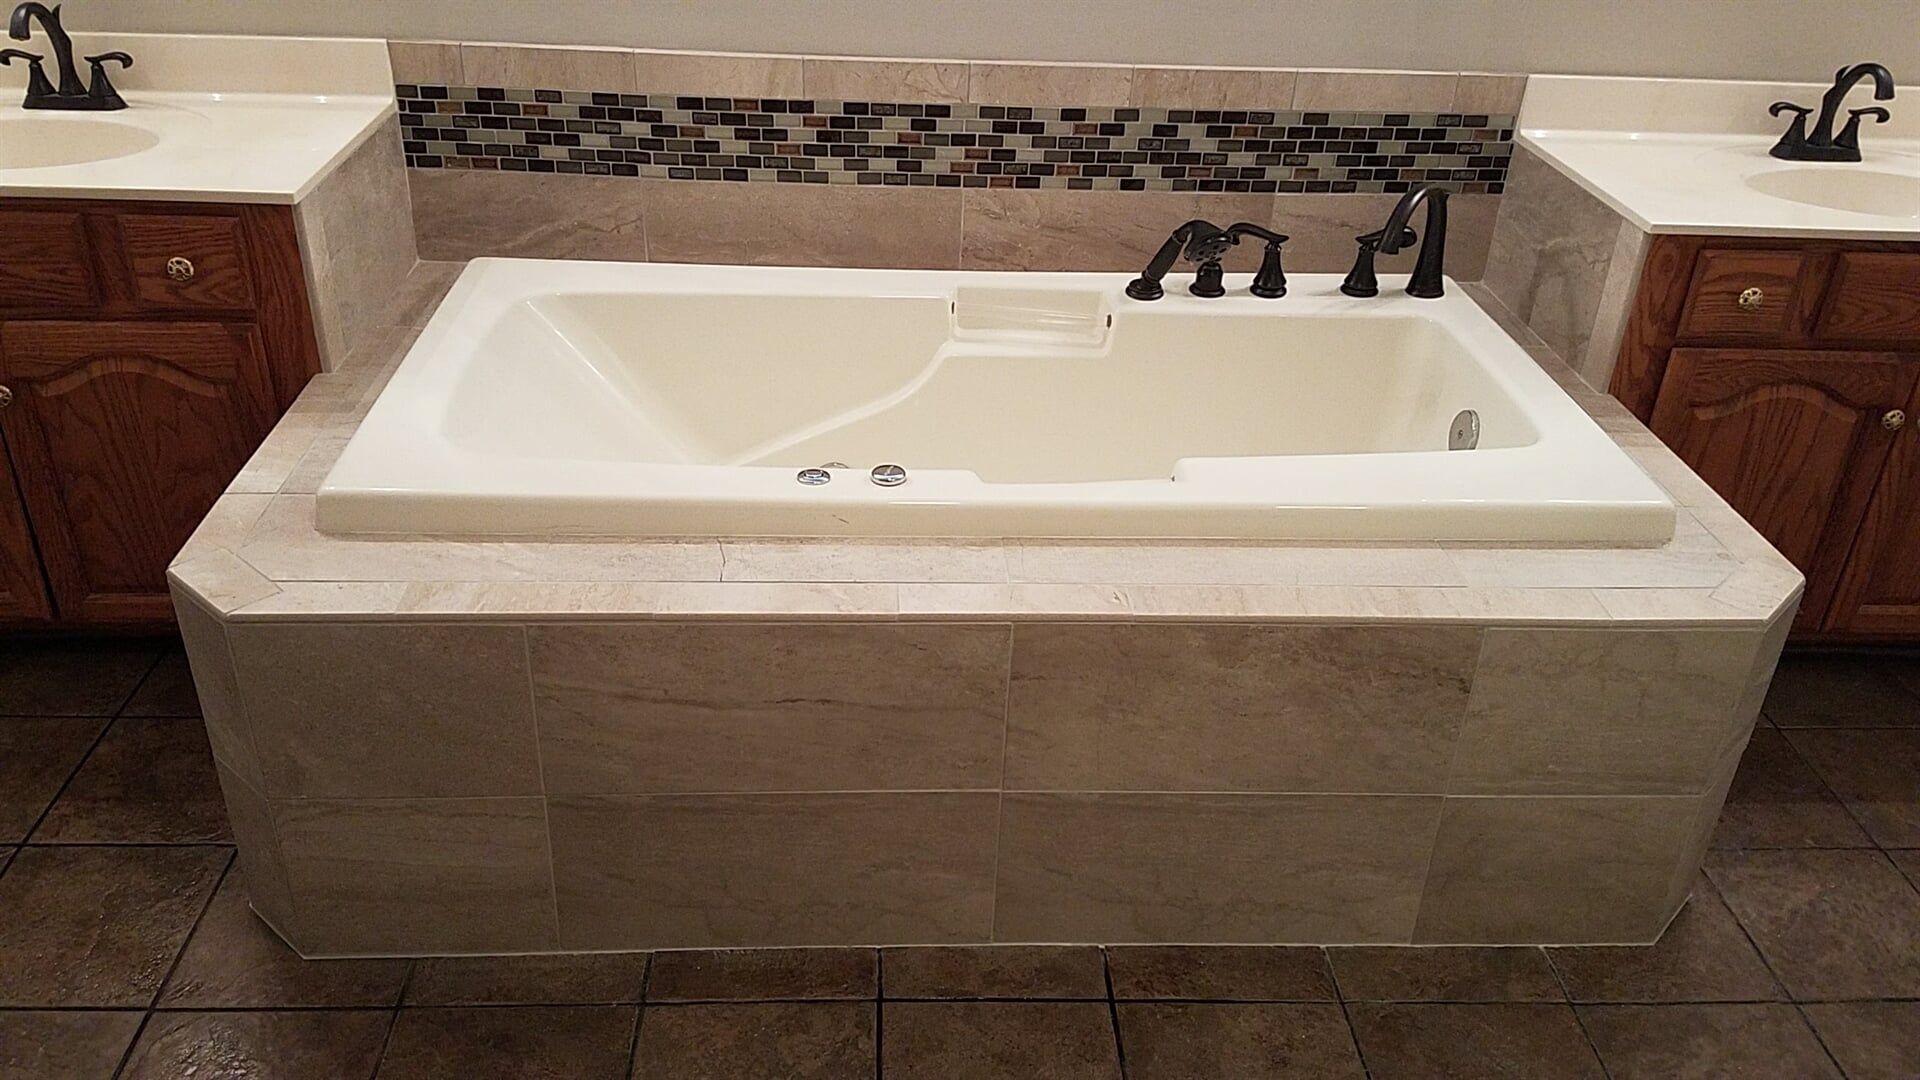 Soaking tub installation in Statesville, NC from McLean Floorcoverings